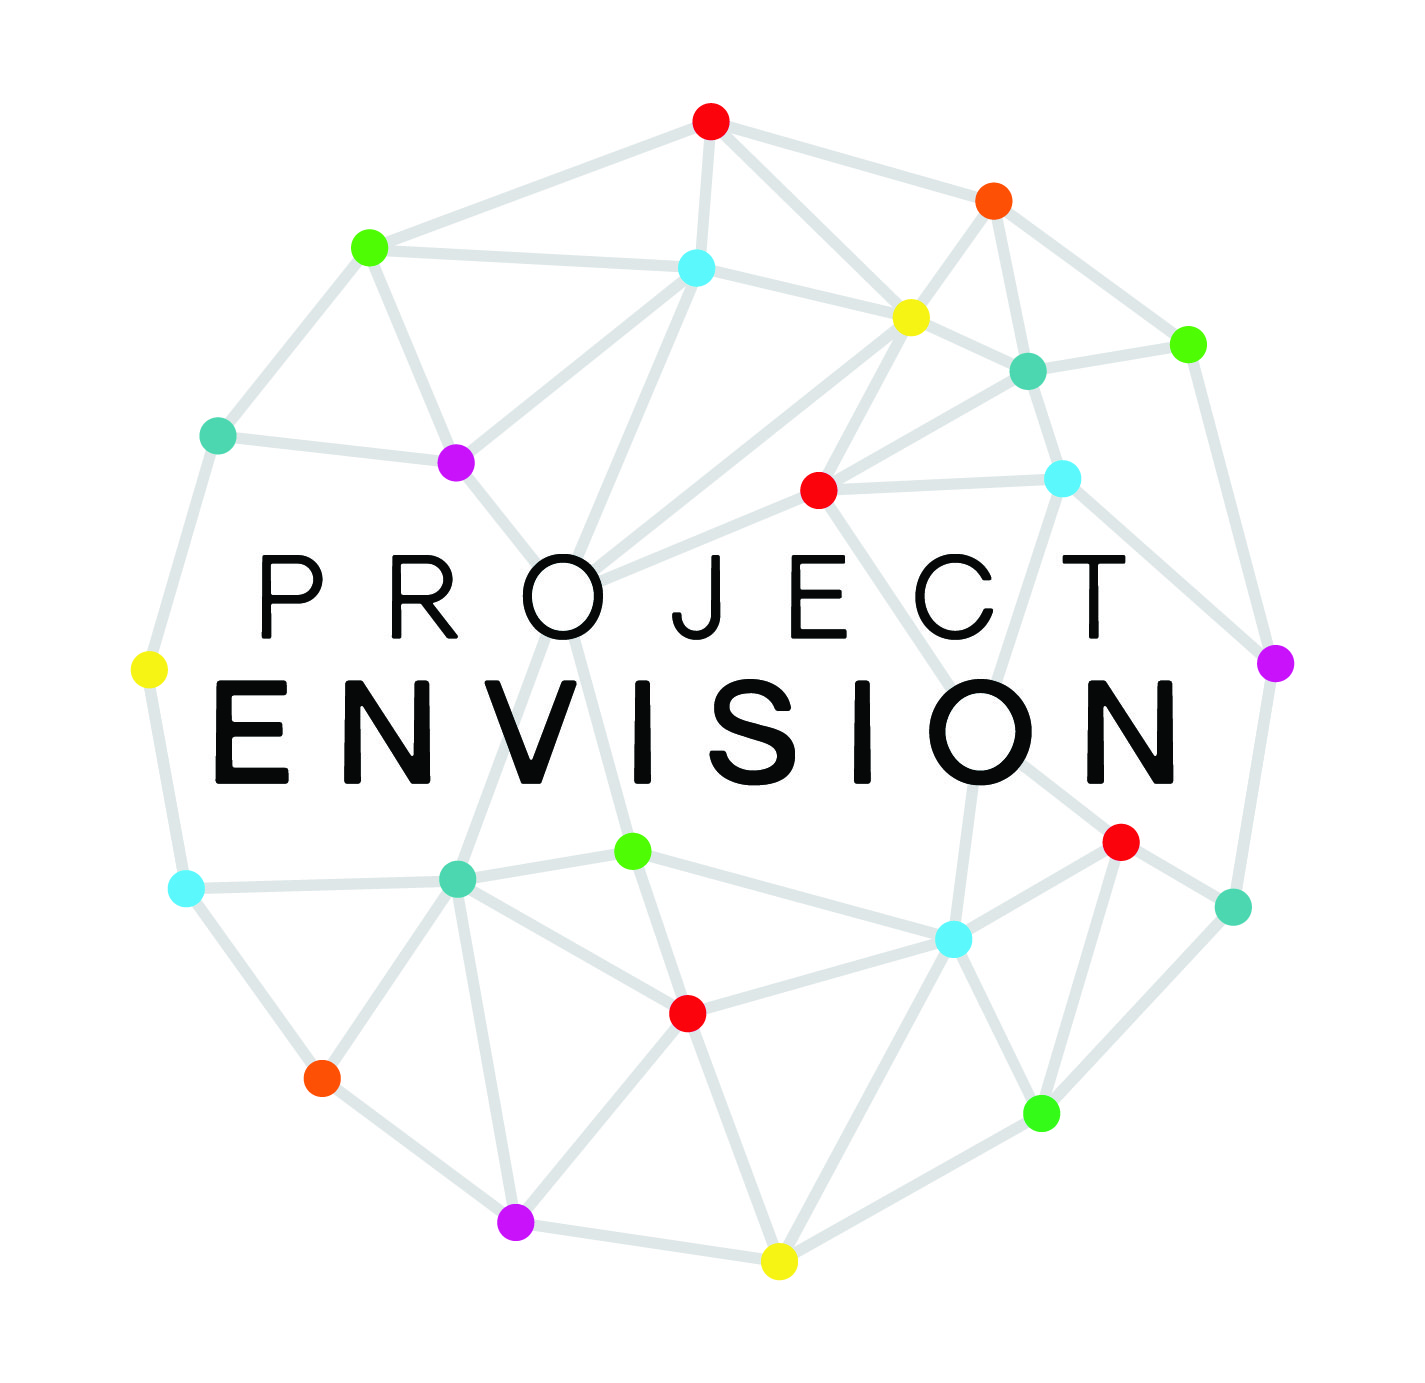 Project Envision